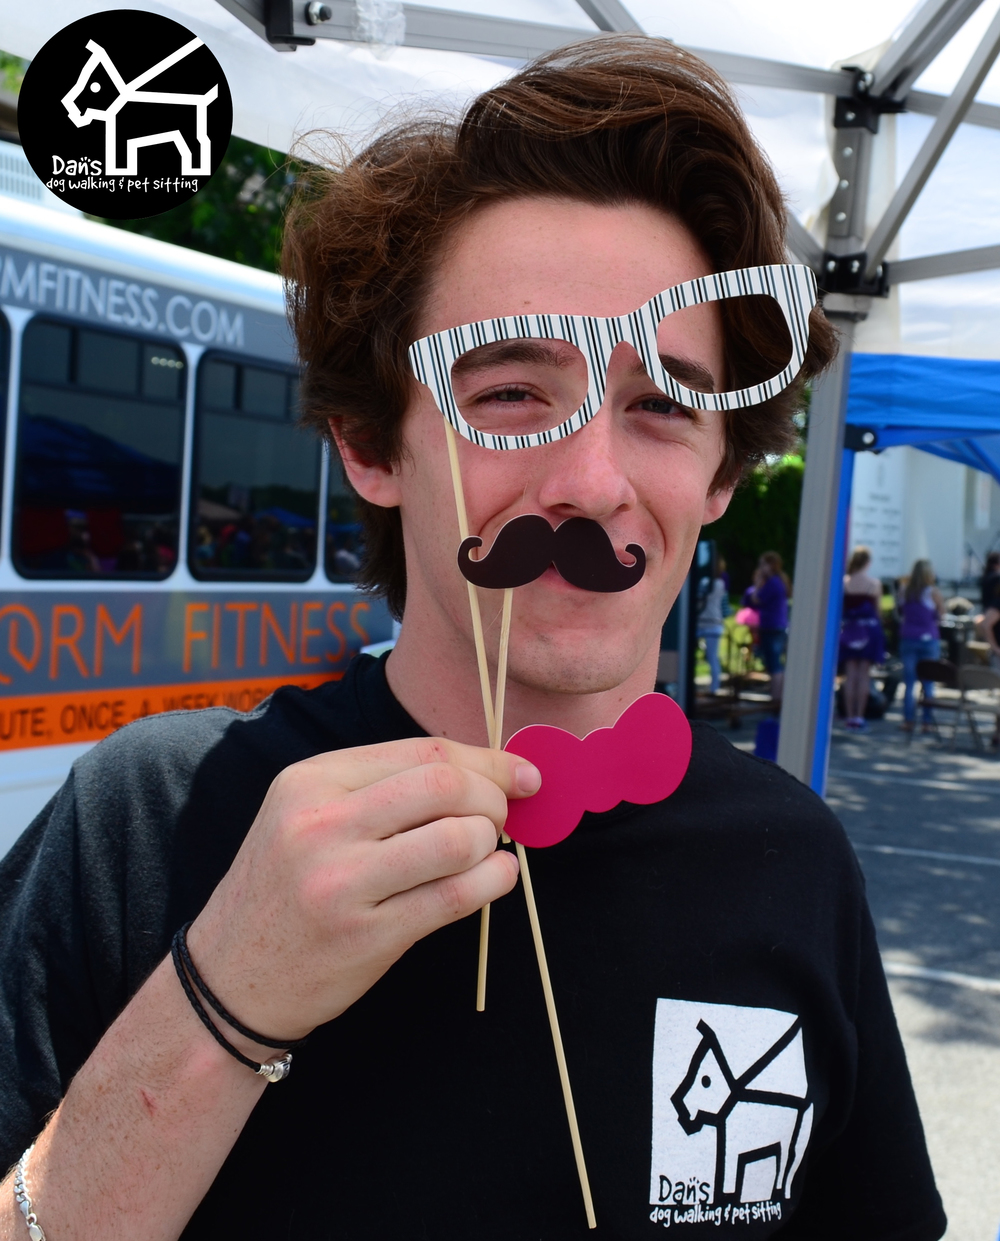 Dan Enjoying the Props at Dan's Dog Walking and Pet Sitting Doggie Photo Booth at Harbor Fest 2015.jpg